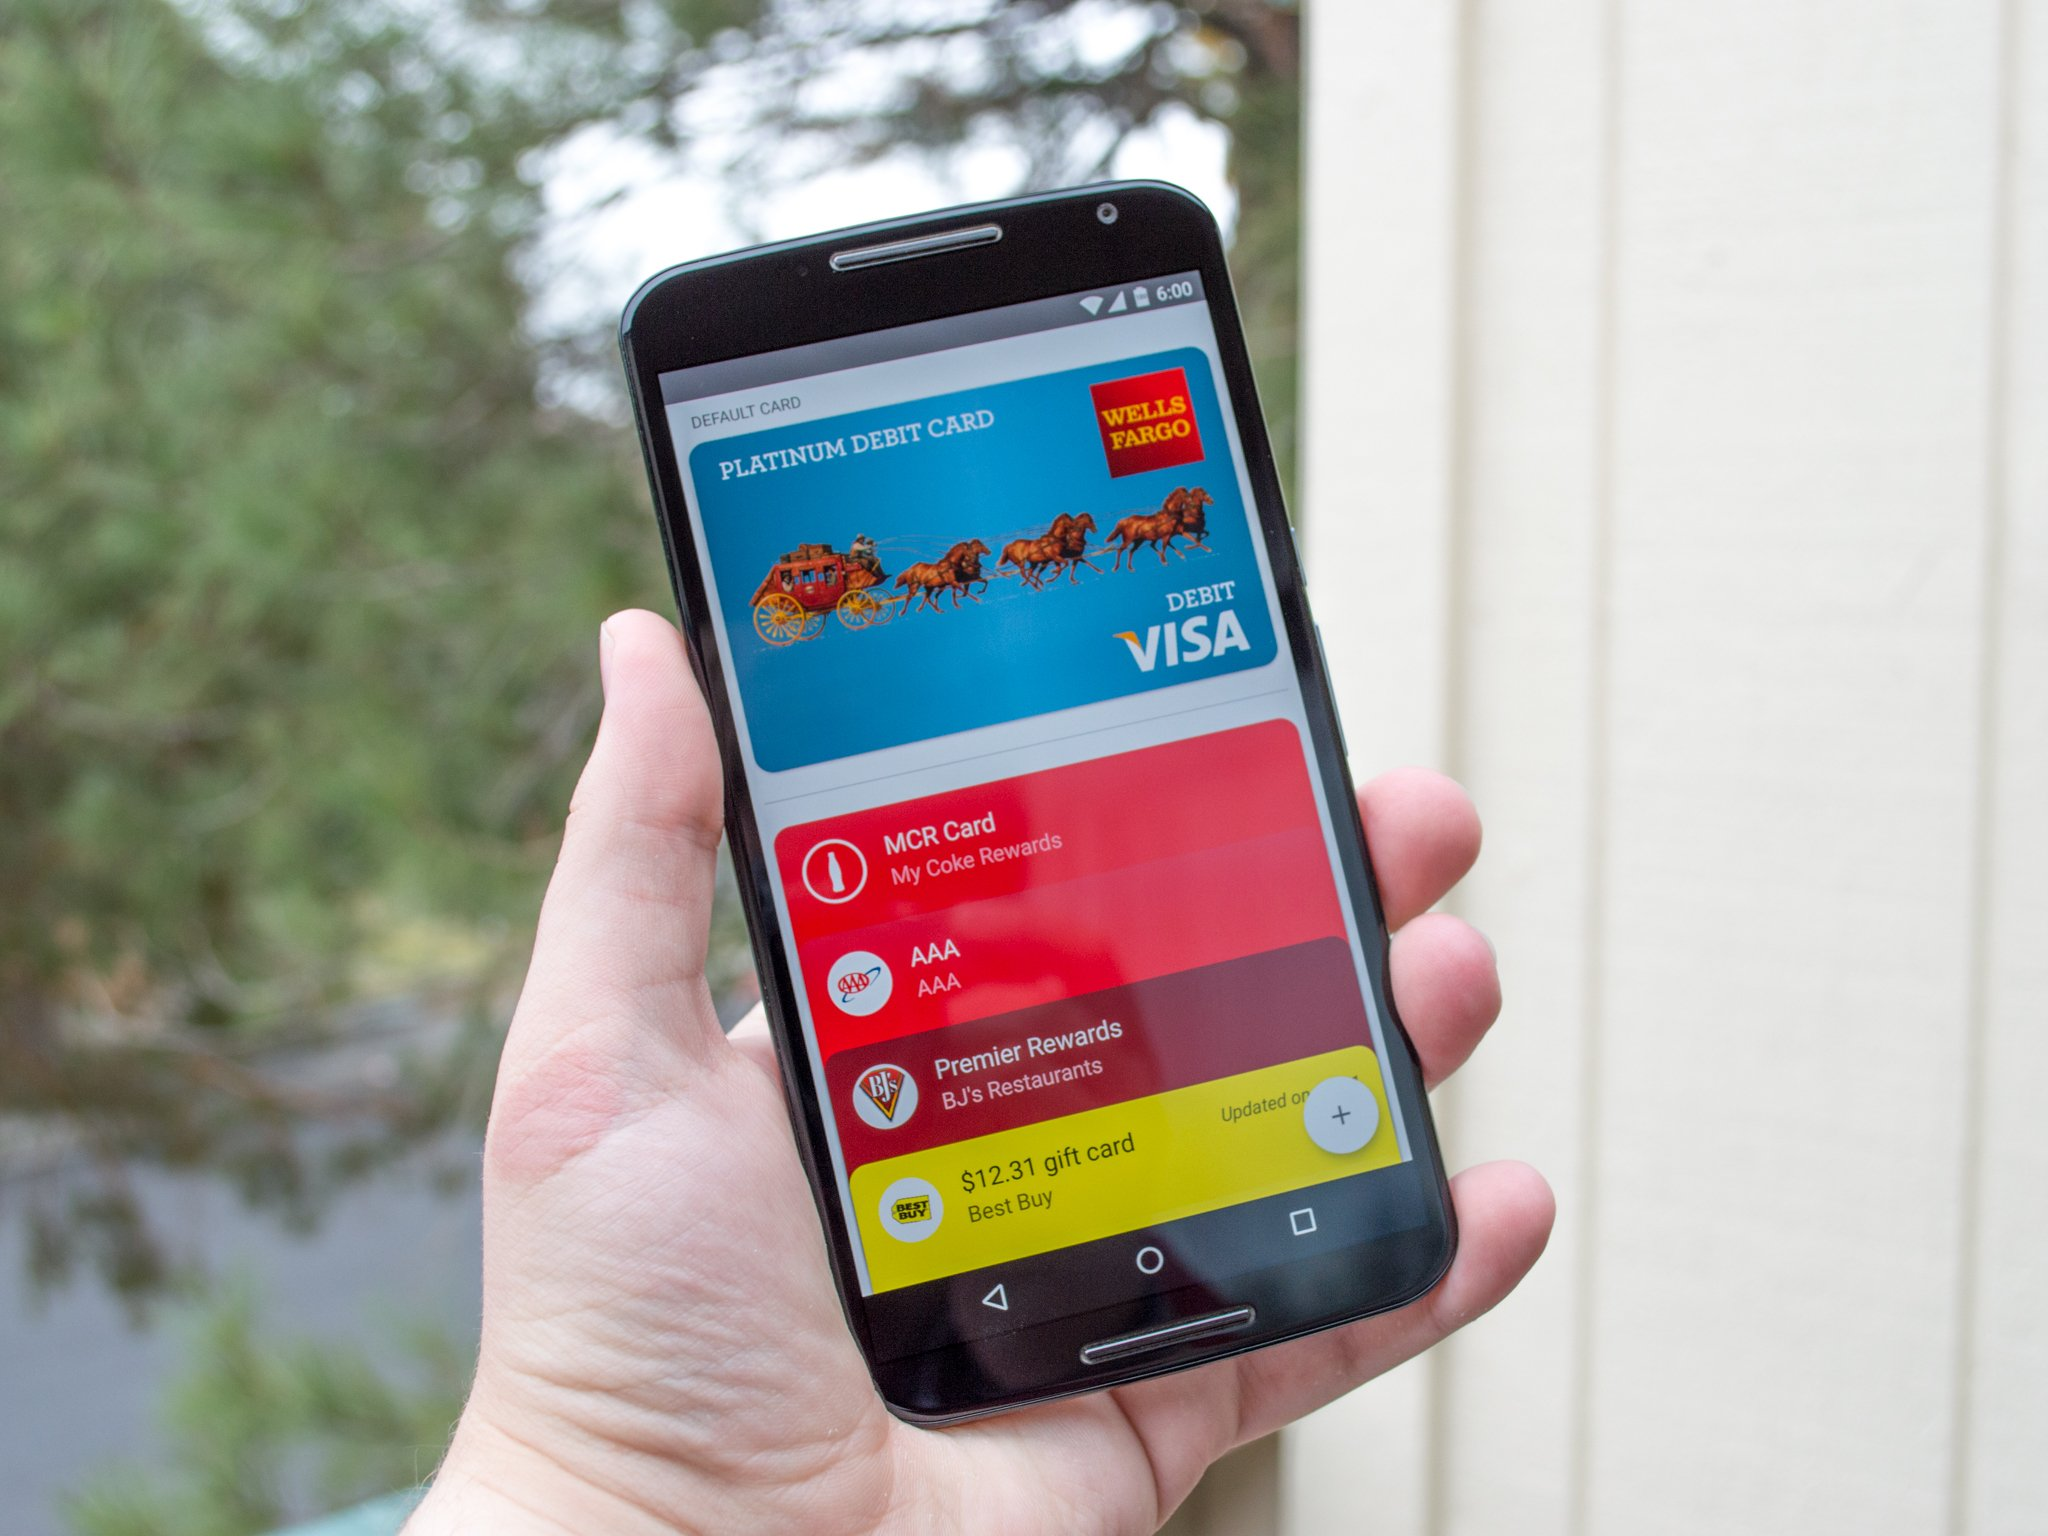 Best Place To Get Gift Cards You Can Score A 20 Best Buy E Gift Card For Using Android Pay On